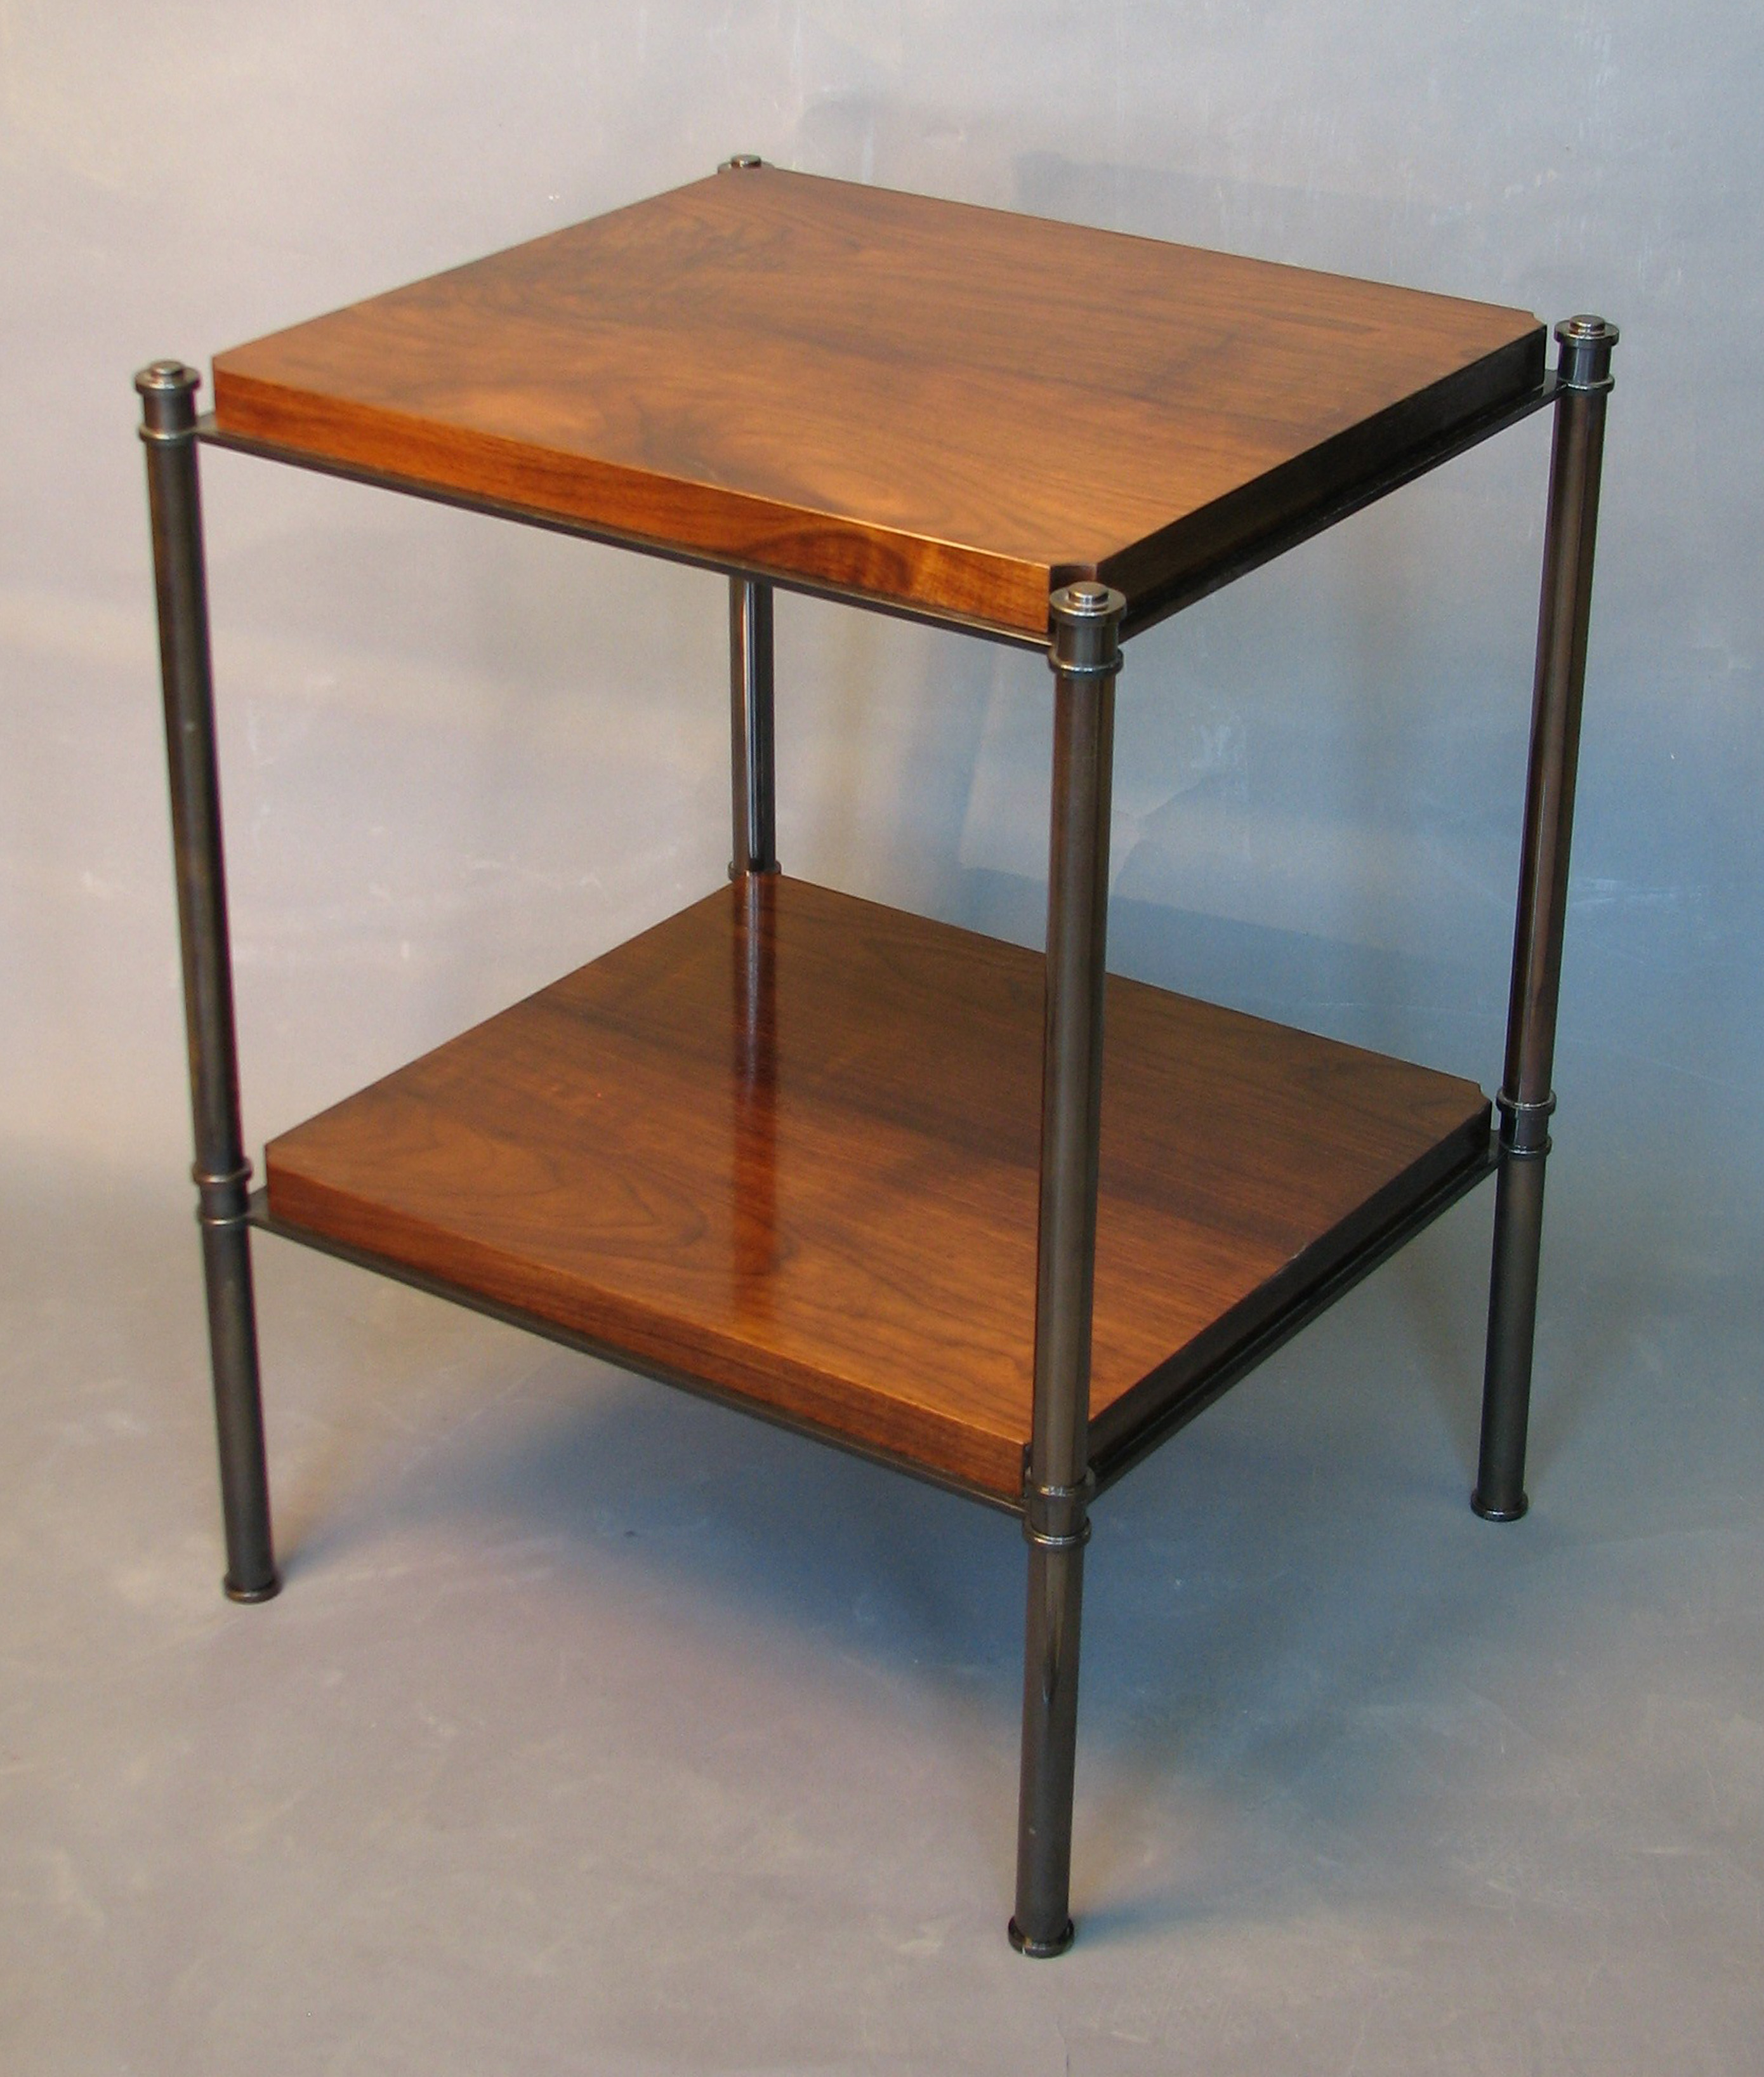 Thumbnail image for Metal Edged Table With Plank Shelves